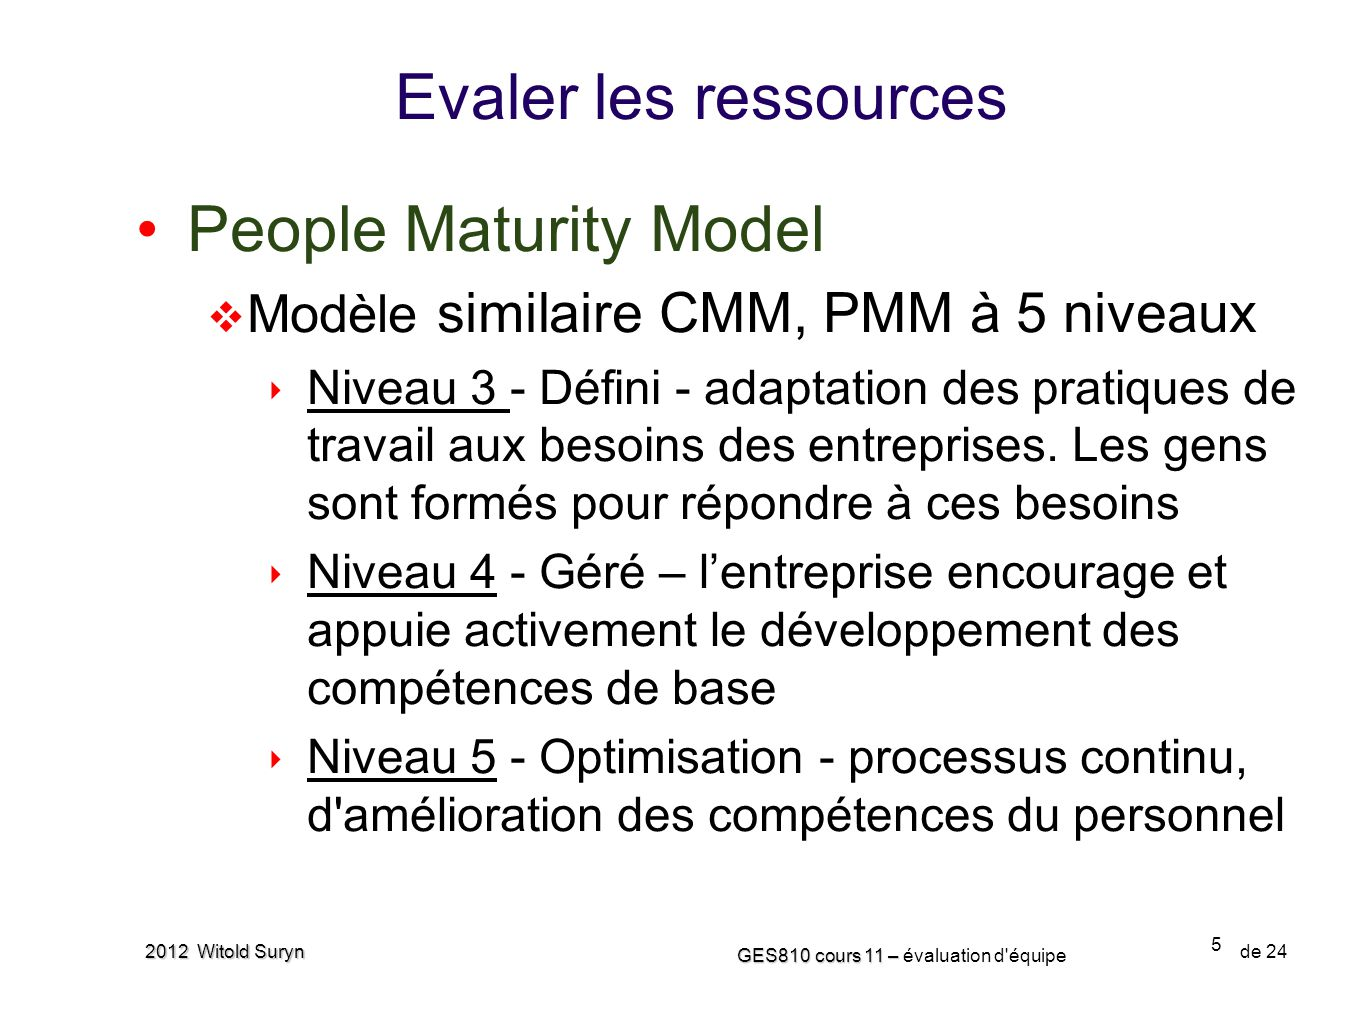 6 GES810 cours 11 – GES810 cours 11 – évaluation d équipe de 24 2012 Witold Suryn People Capability Maturity Model Repeatable Defined Managed Optimizing Process is informal and ad hoc Instill basic discipline into workforce activities Quantitatively manage organizational growth in workforce capabilities and establish competency- based teams Quantitatively manage organizational growth in workforce capabilities and establish competency- based teams Continuously improve methods for developing personal and organizational competence Continuously improve methods for developing personal and organizational competence LevelProcess Characteristics Compensation Training Performance Management Staffing Communication Work Environment Continuous Workforce Innovation Coaching Personal Competency Development Key Process Areas Identify primary competencies and align workforce activities with them Participatory Culture Workforce Planning Competency-Based Practices Career Development Competency Development Knowledge and Skills Analysis Organizational Performance Alignment Organizational Competency Management Team-Based Practices Team Building Mentoring Initial